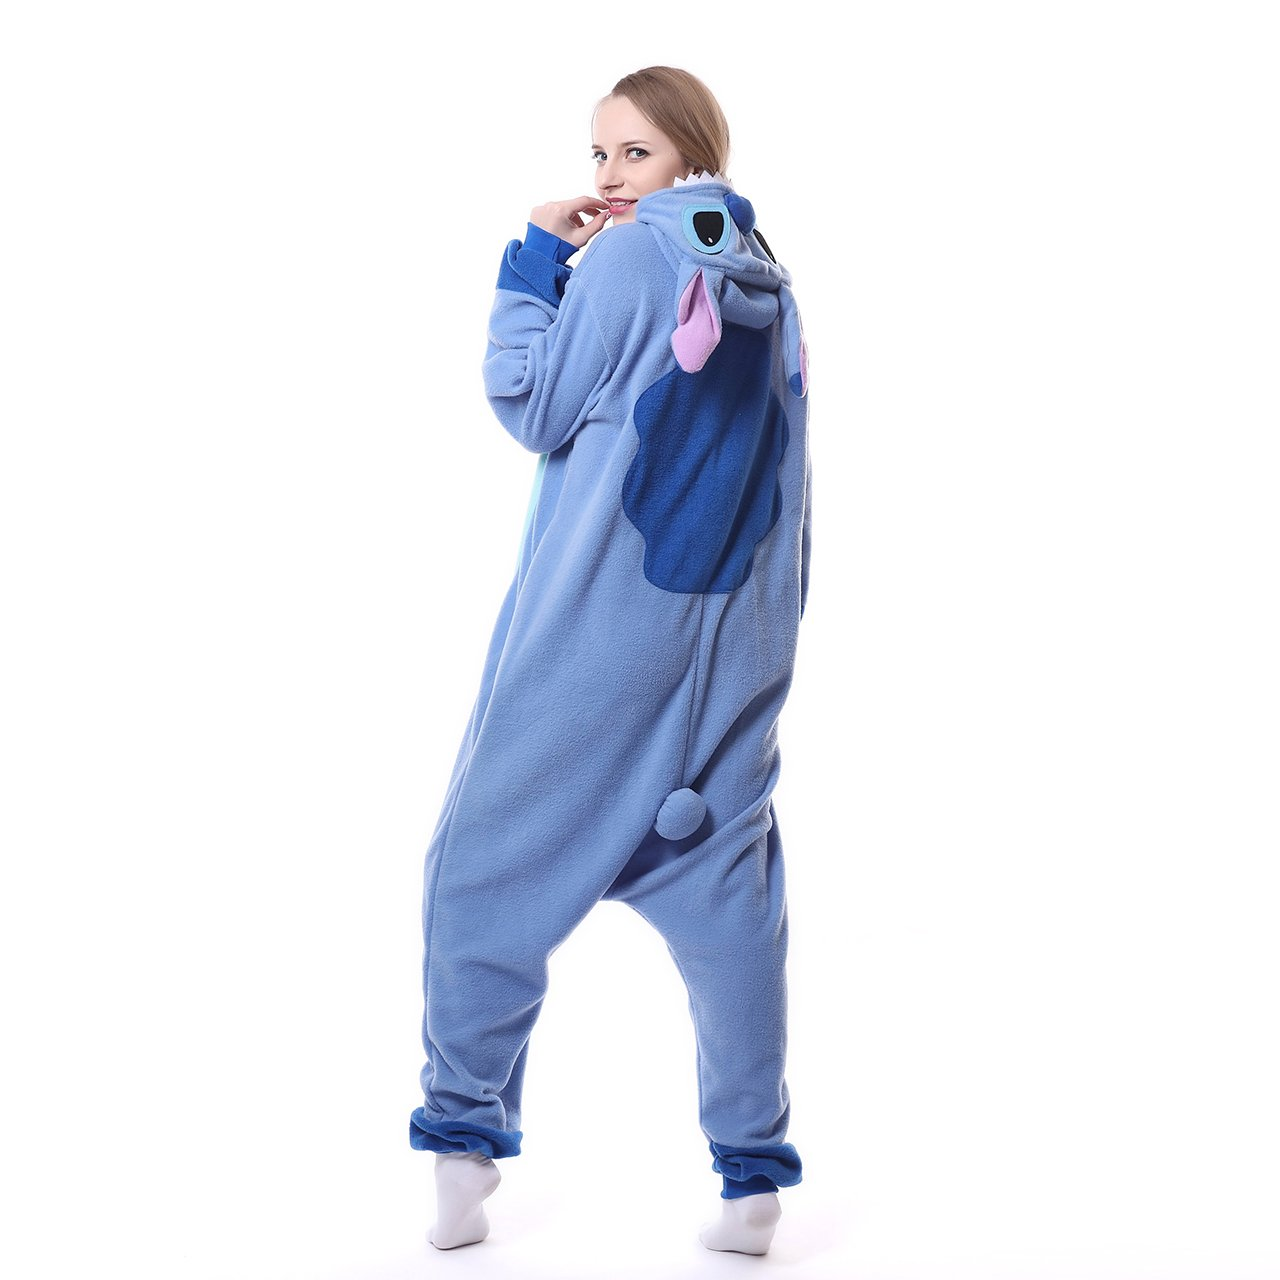 MEILIS Cartoon Sleepsuit Costume Cosplay Lounge Wear Kigurumi Onesie Pajamas Stitch,Birthday or Christmas Gift,Blue by MEILIS (Image #3)